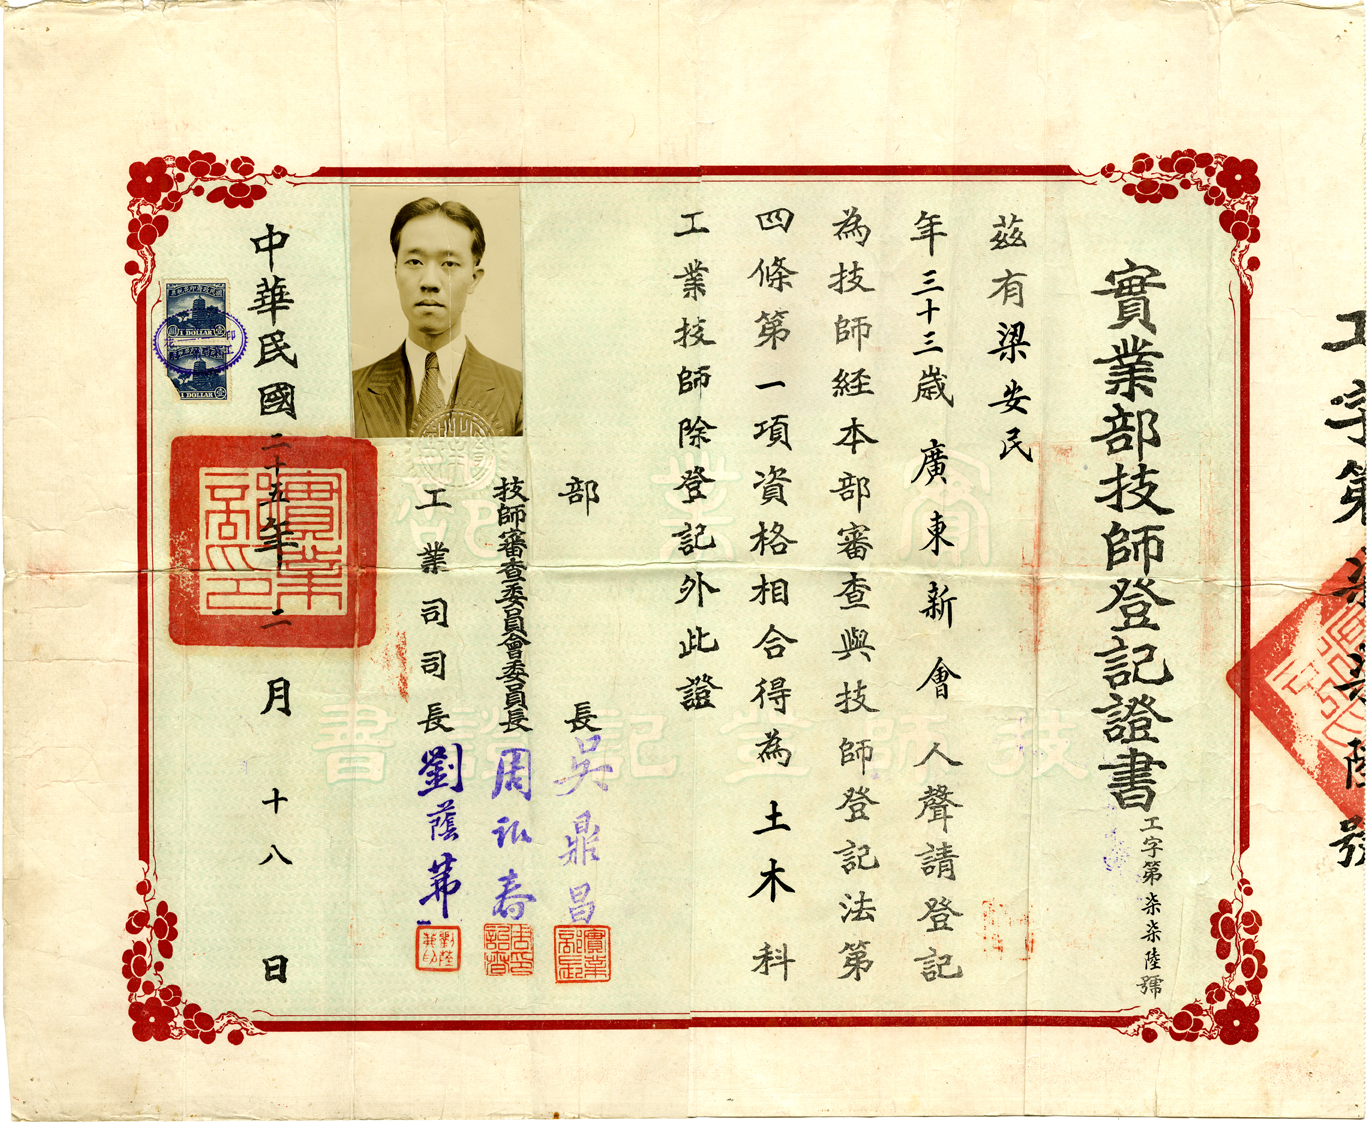 Onn Mann Liang Civil Engineer registration, circa 1933